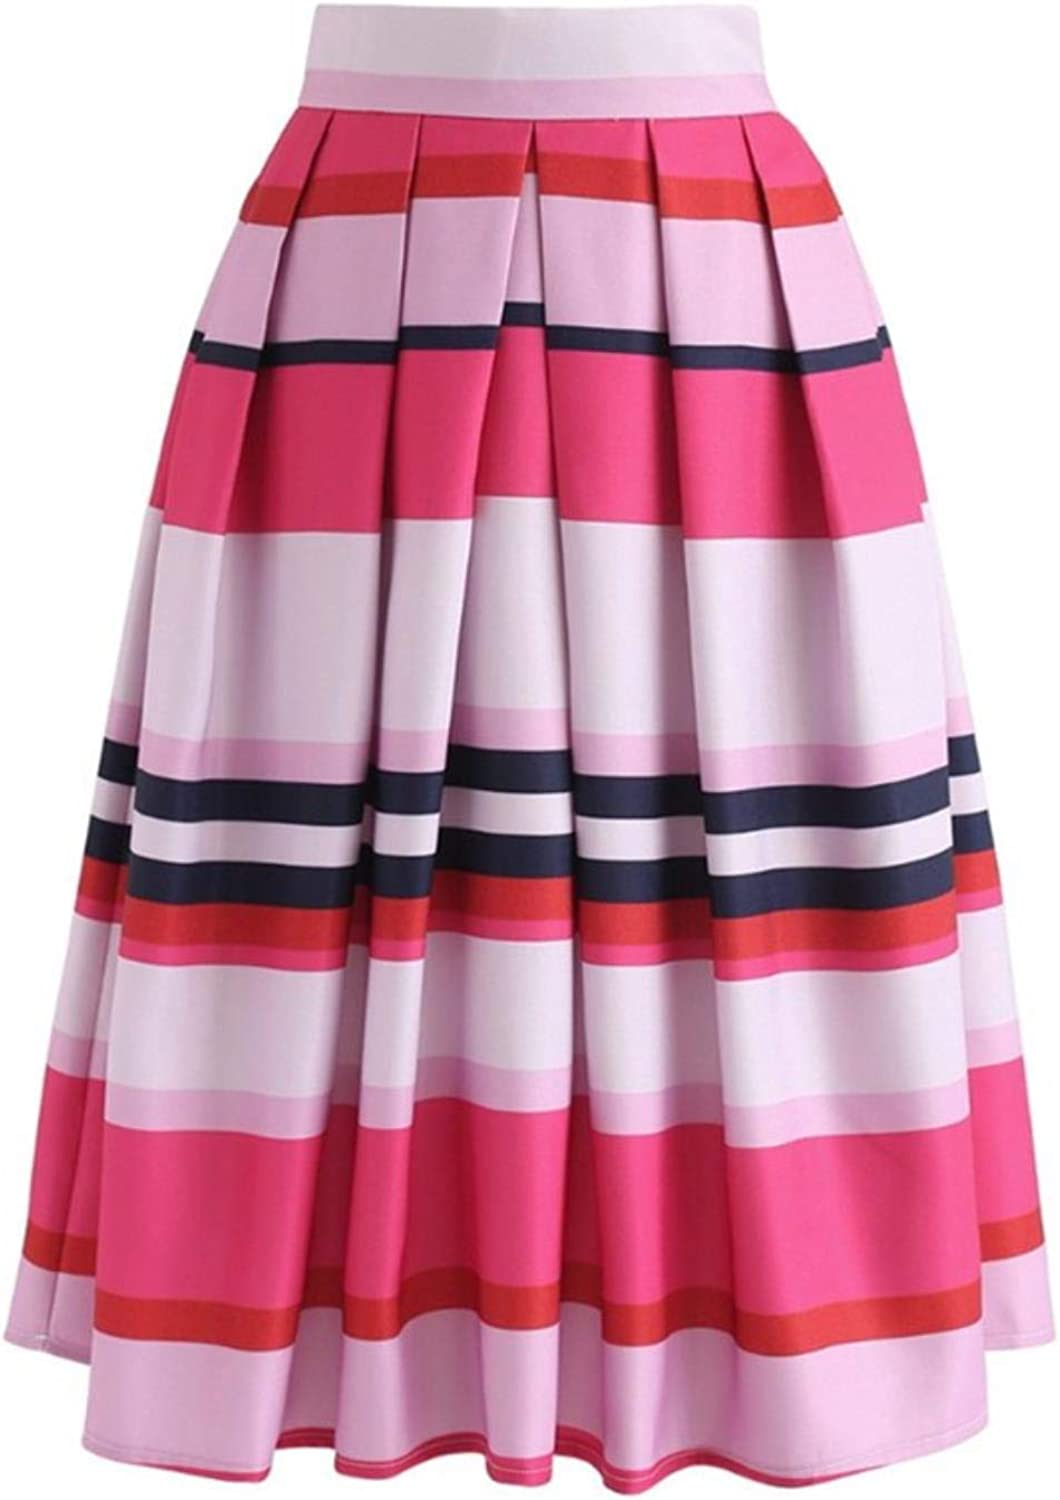 XiDpyQ Ladies Vintage color Striped Geometric Print Pleated Midi Skirt